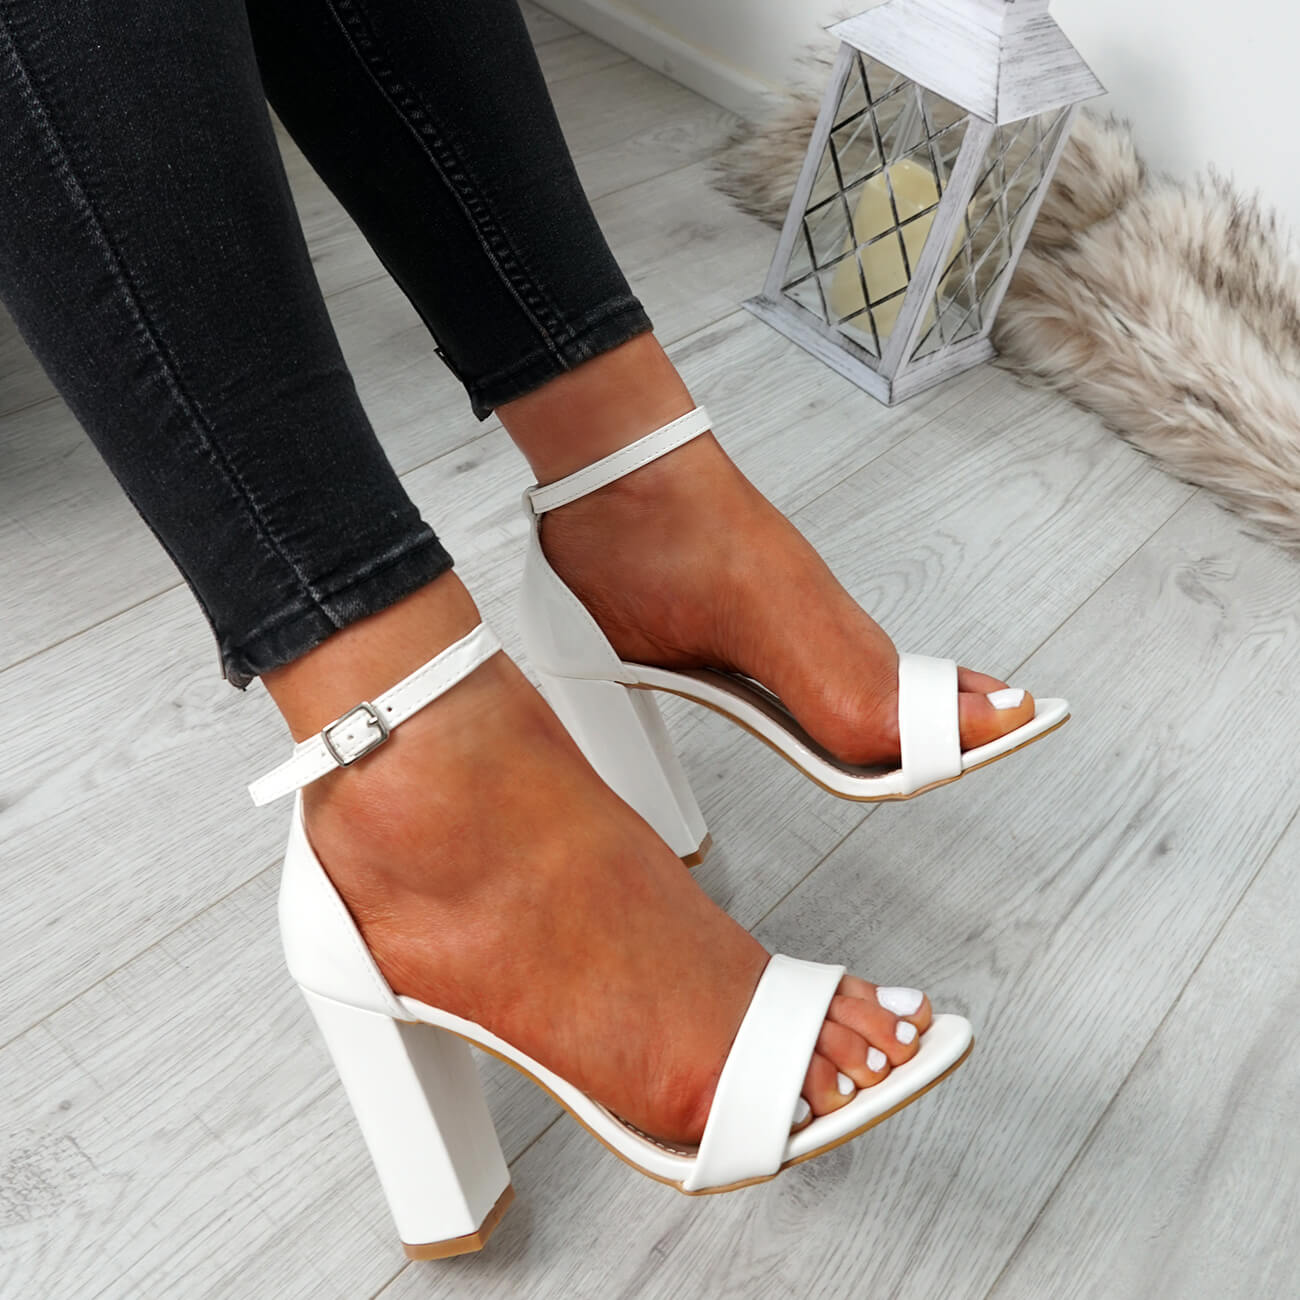 WOMENS-LADIES-ANKLE-STRAP-HIGH-BLOCK-HEEL-SANDALS-PEEP-TOE-PARTY-SHOES-SIZE thumbnail 27